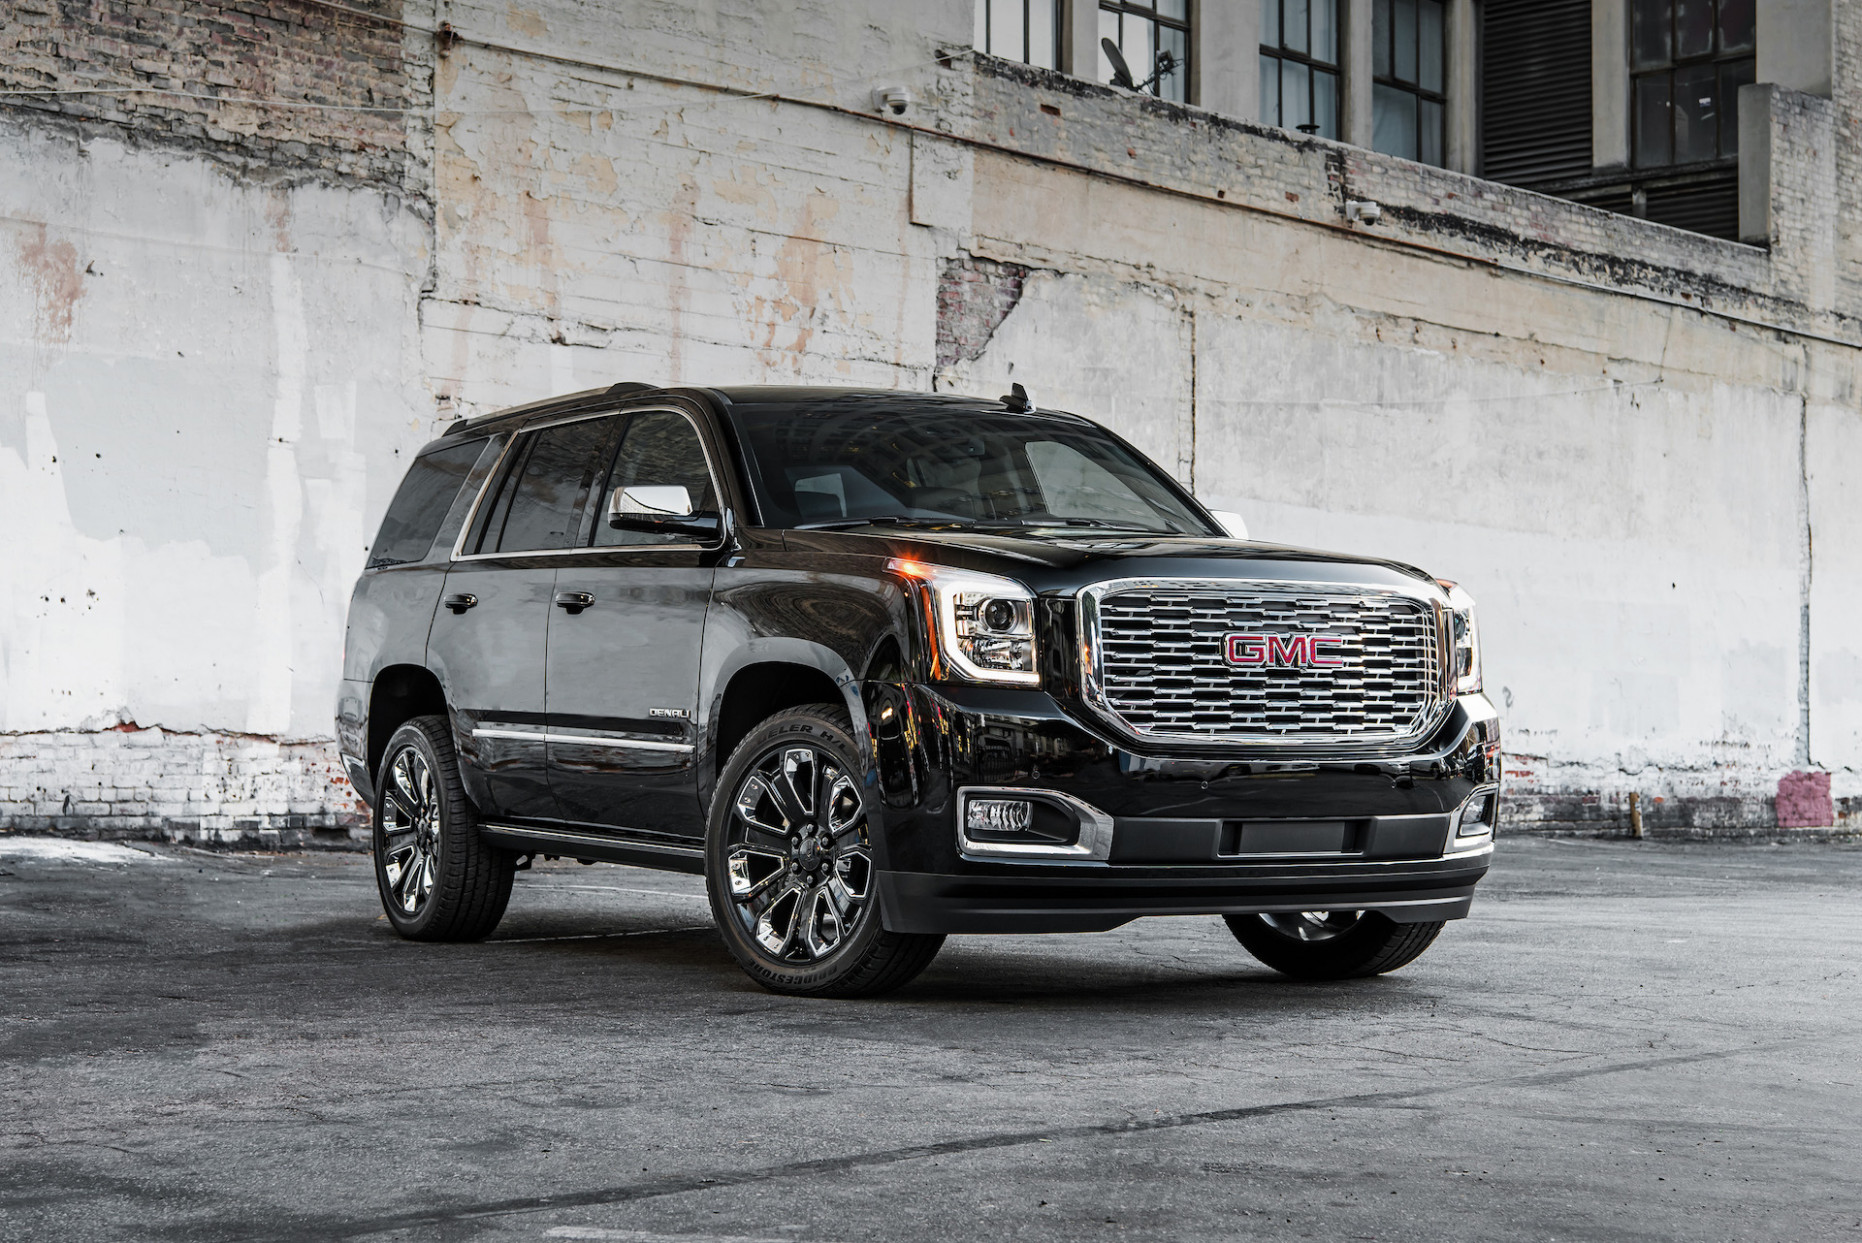 8 GMC Yukon Review, Ratings, Specs, Prices, and Photos - The ..